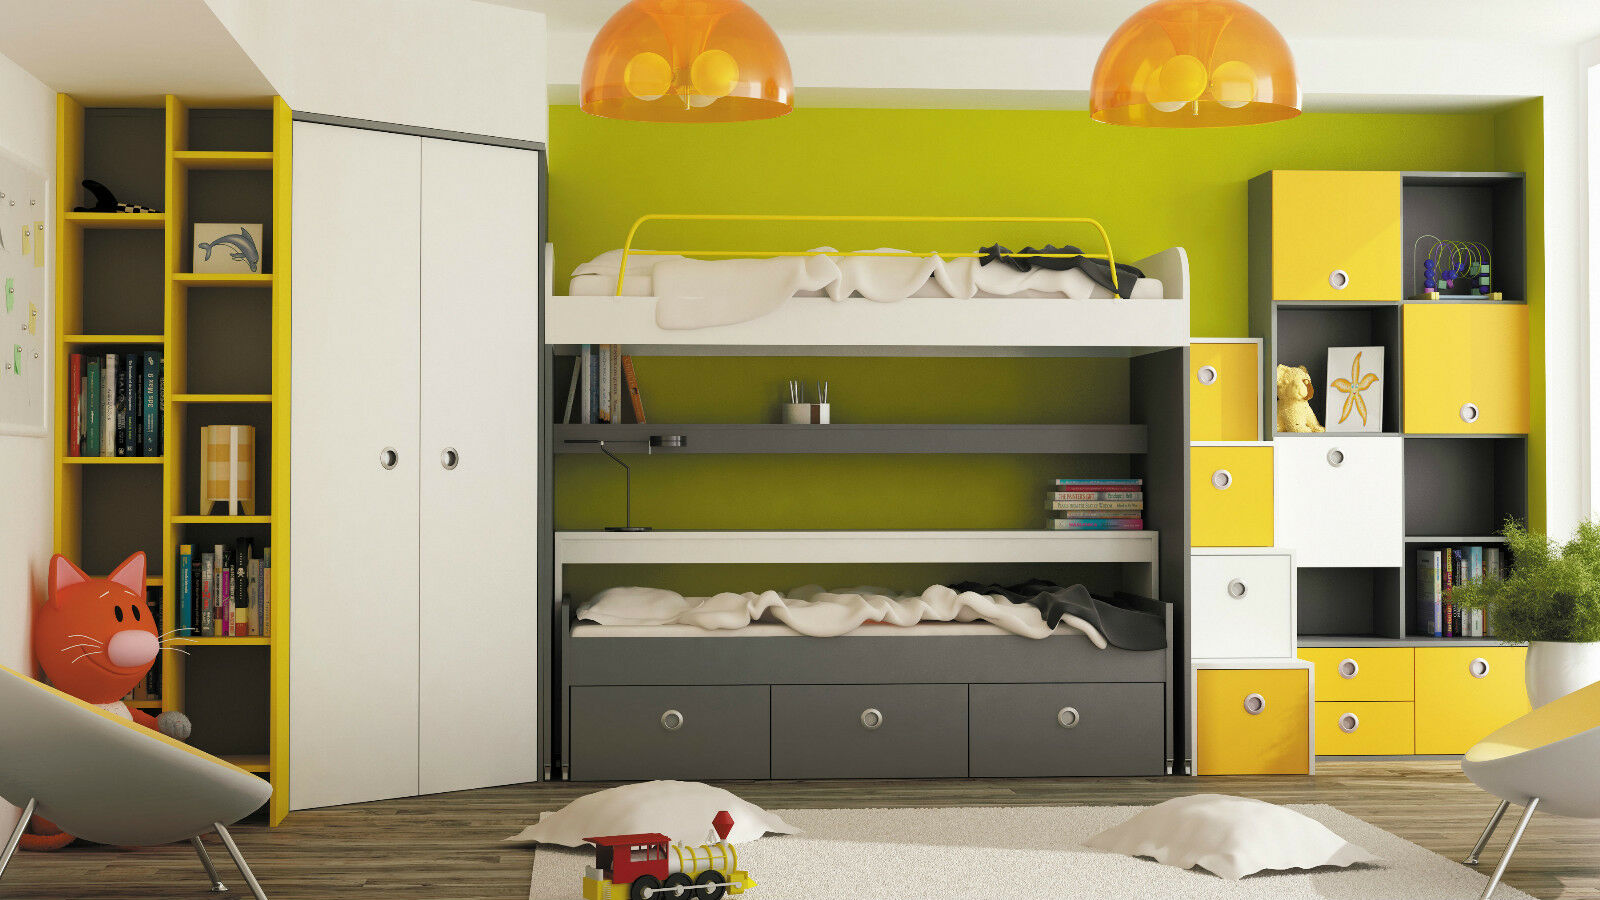 neu jugendzimmer set city mit bett regal kleiderschrank kinderzimmer hochbett eur. Black Bedroom Furniture Sets. Home Design Ideas